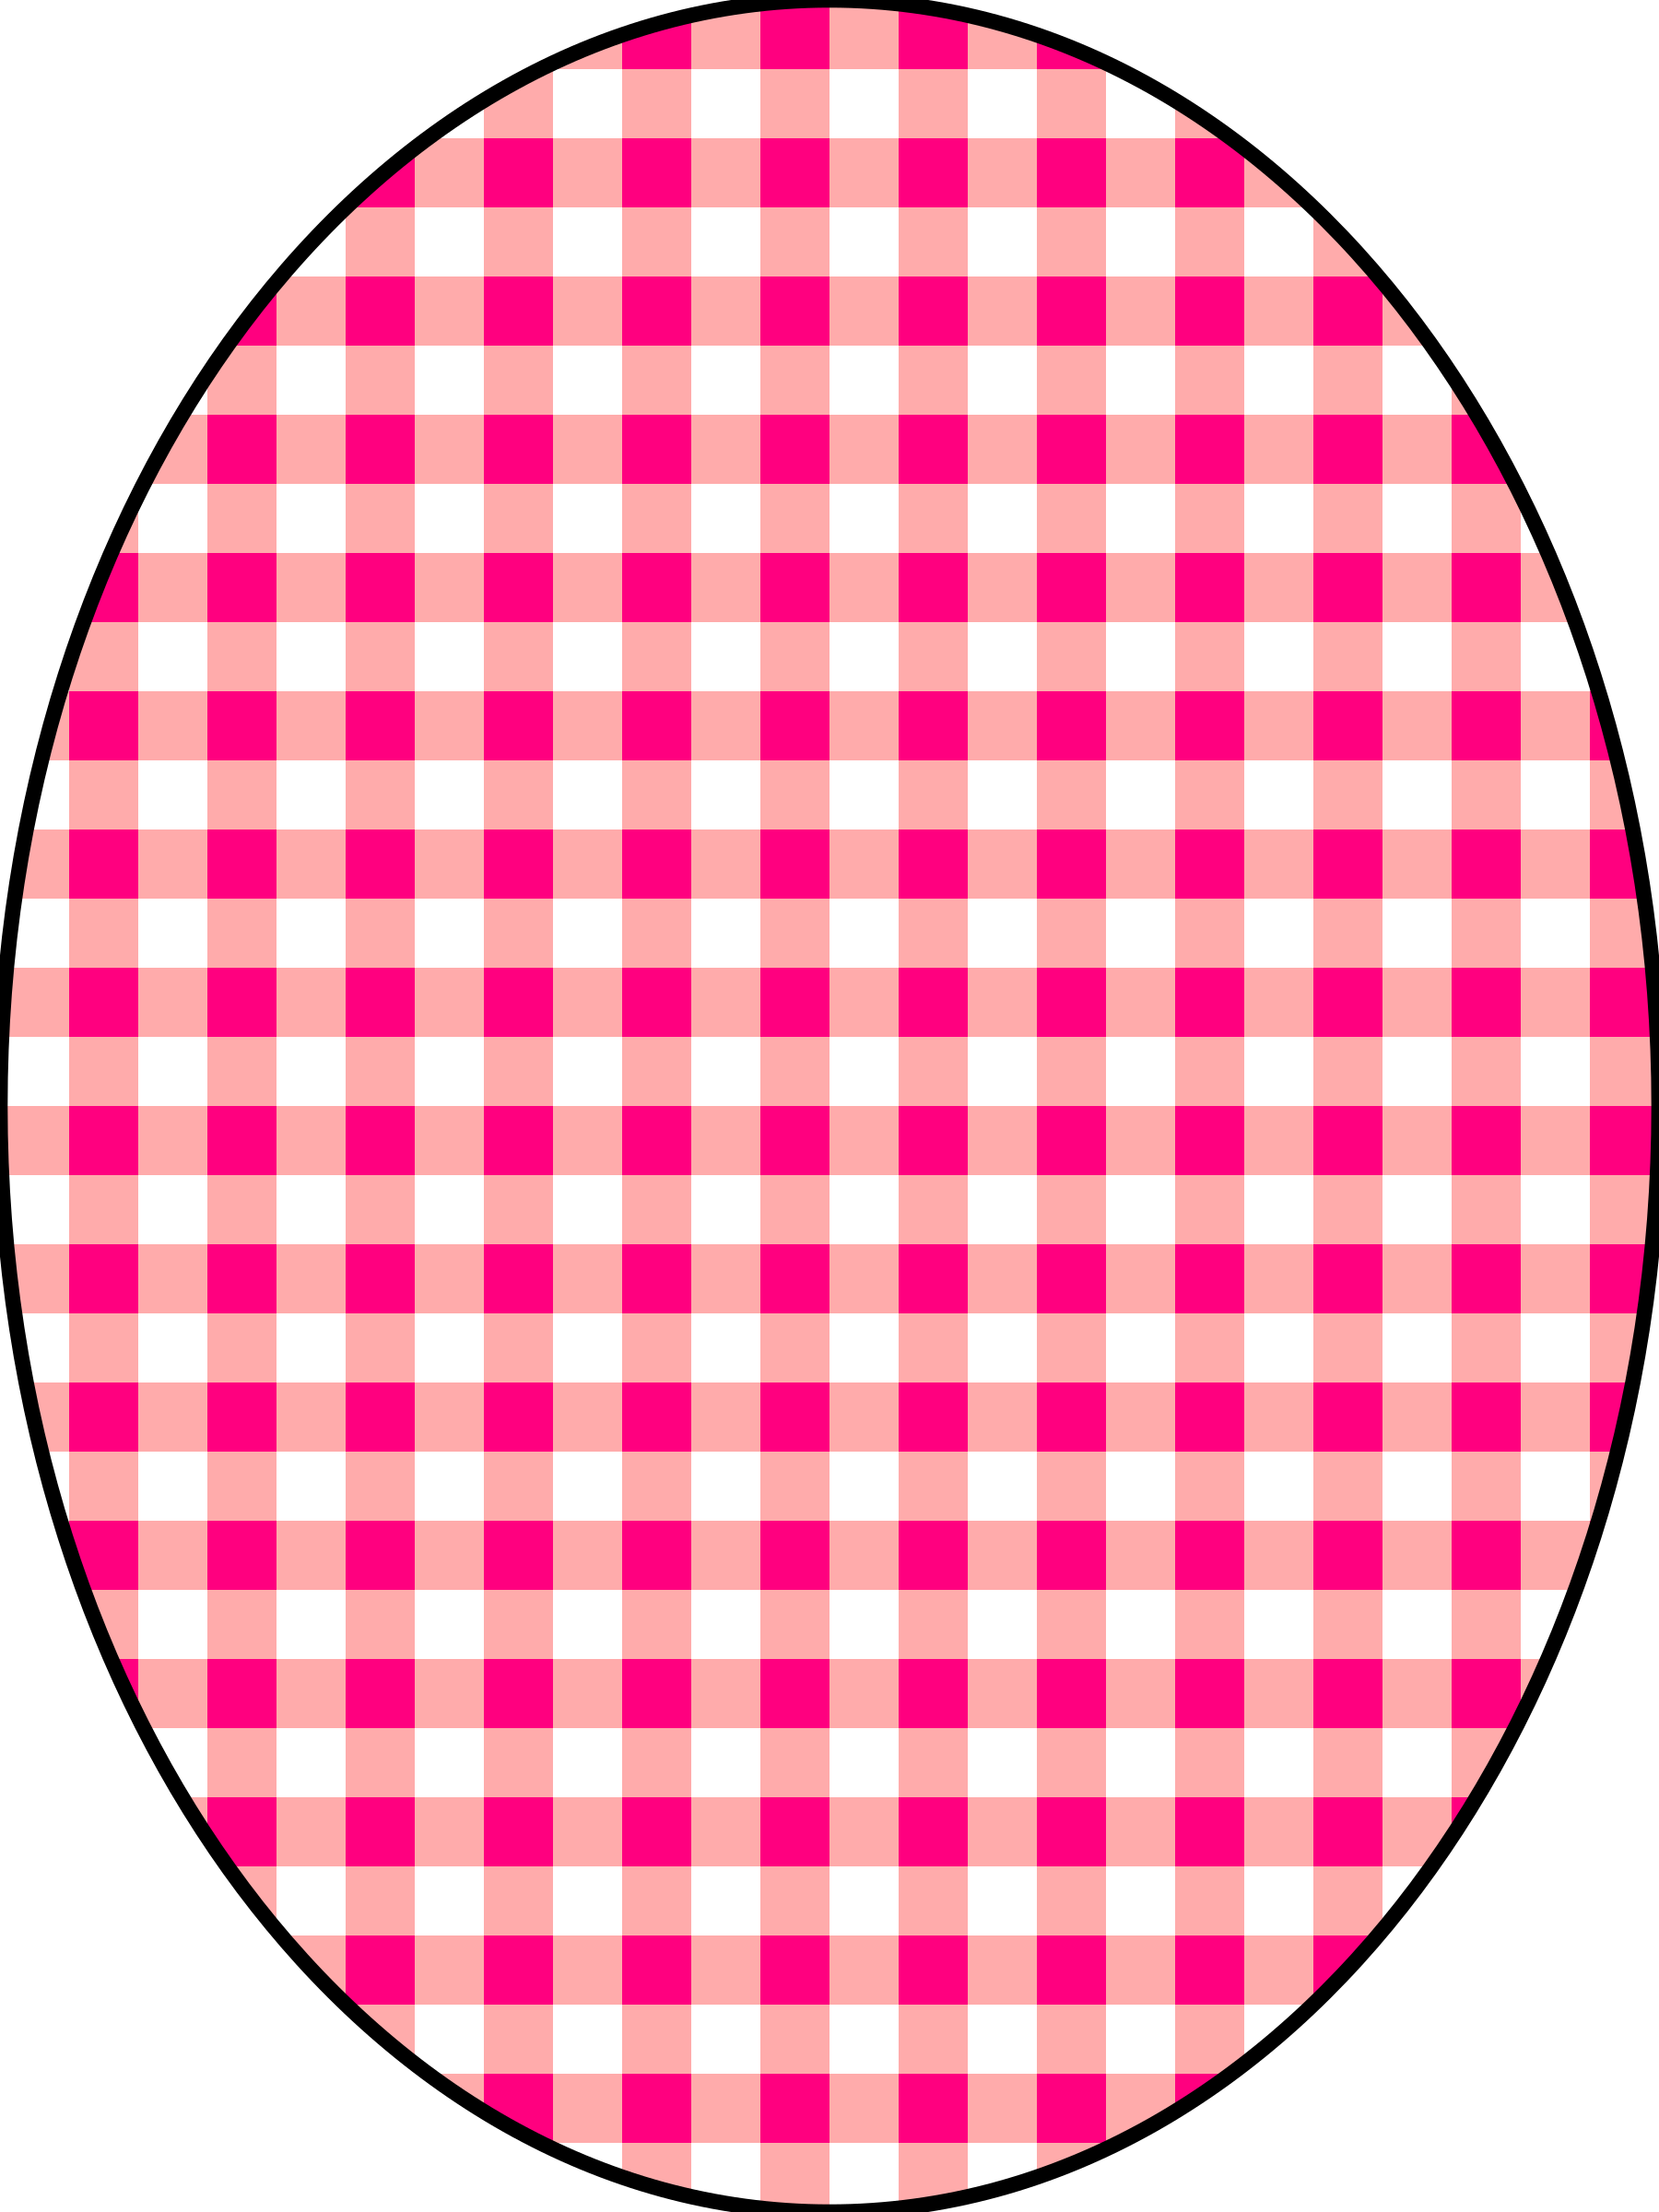 pattern checkered vichy 03 pink by pitr